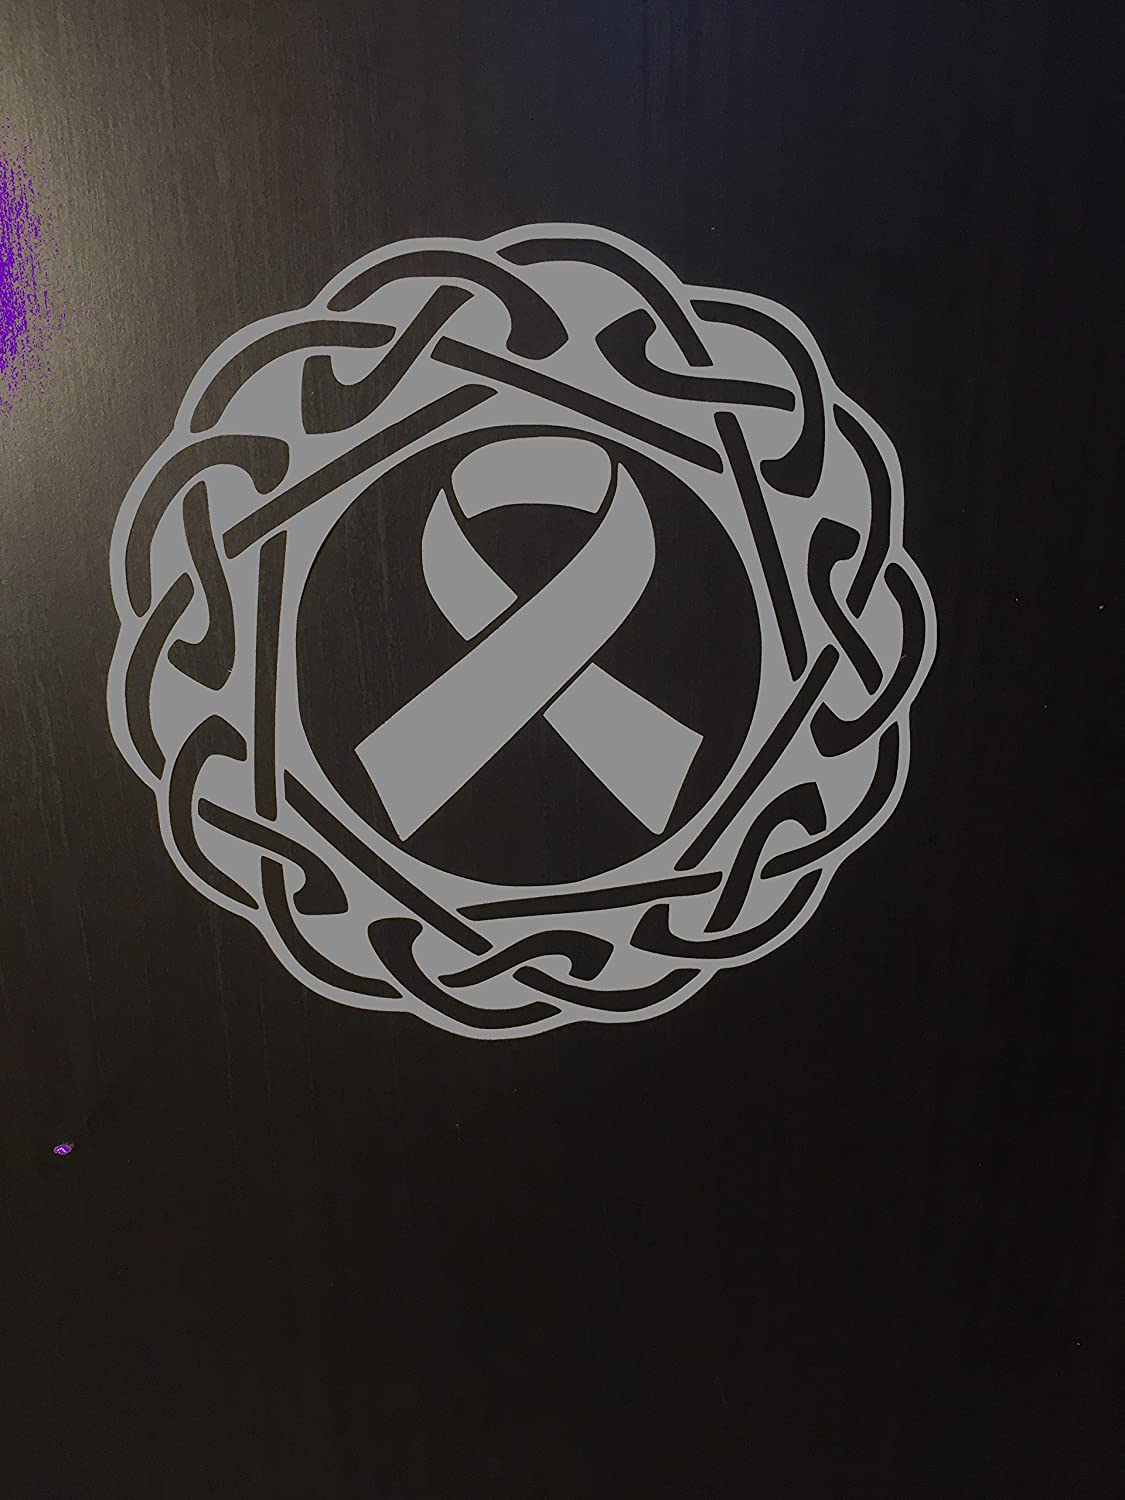 Amazon com gray awareness ribbon celtic knot window decal brain tumor brain cancer allergies aphasia asthma diabetes parkinsons everything else